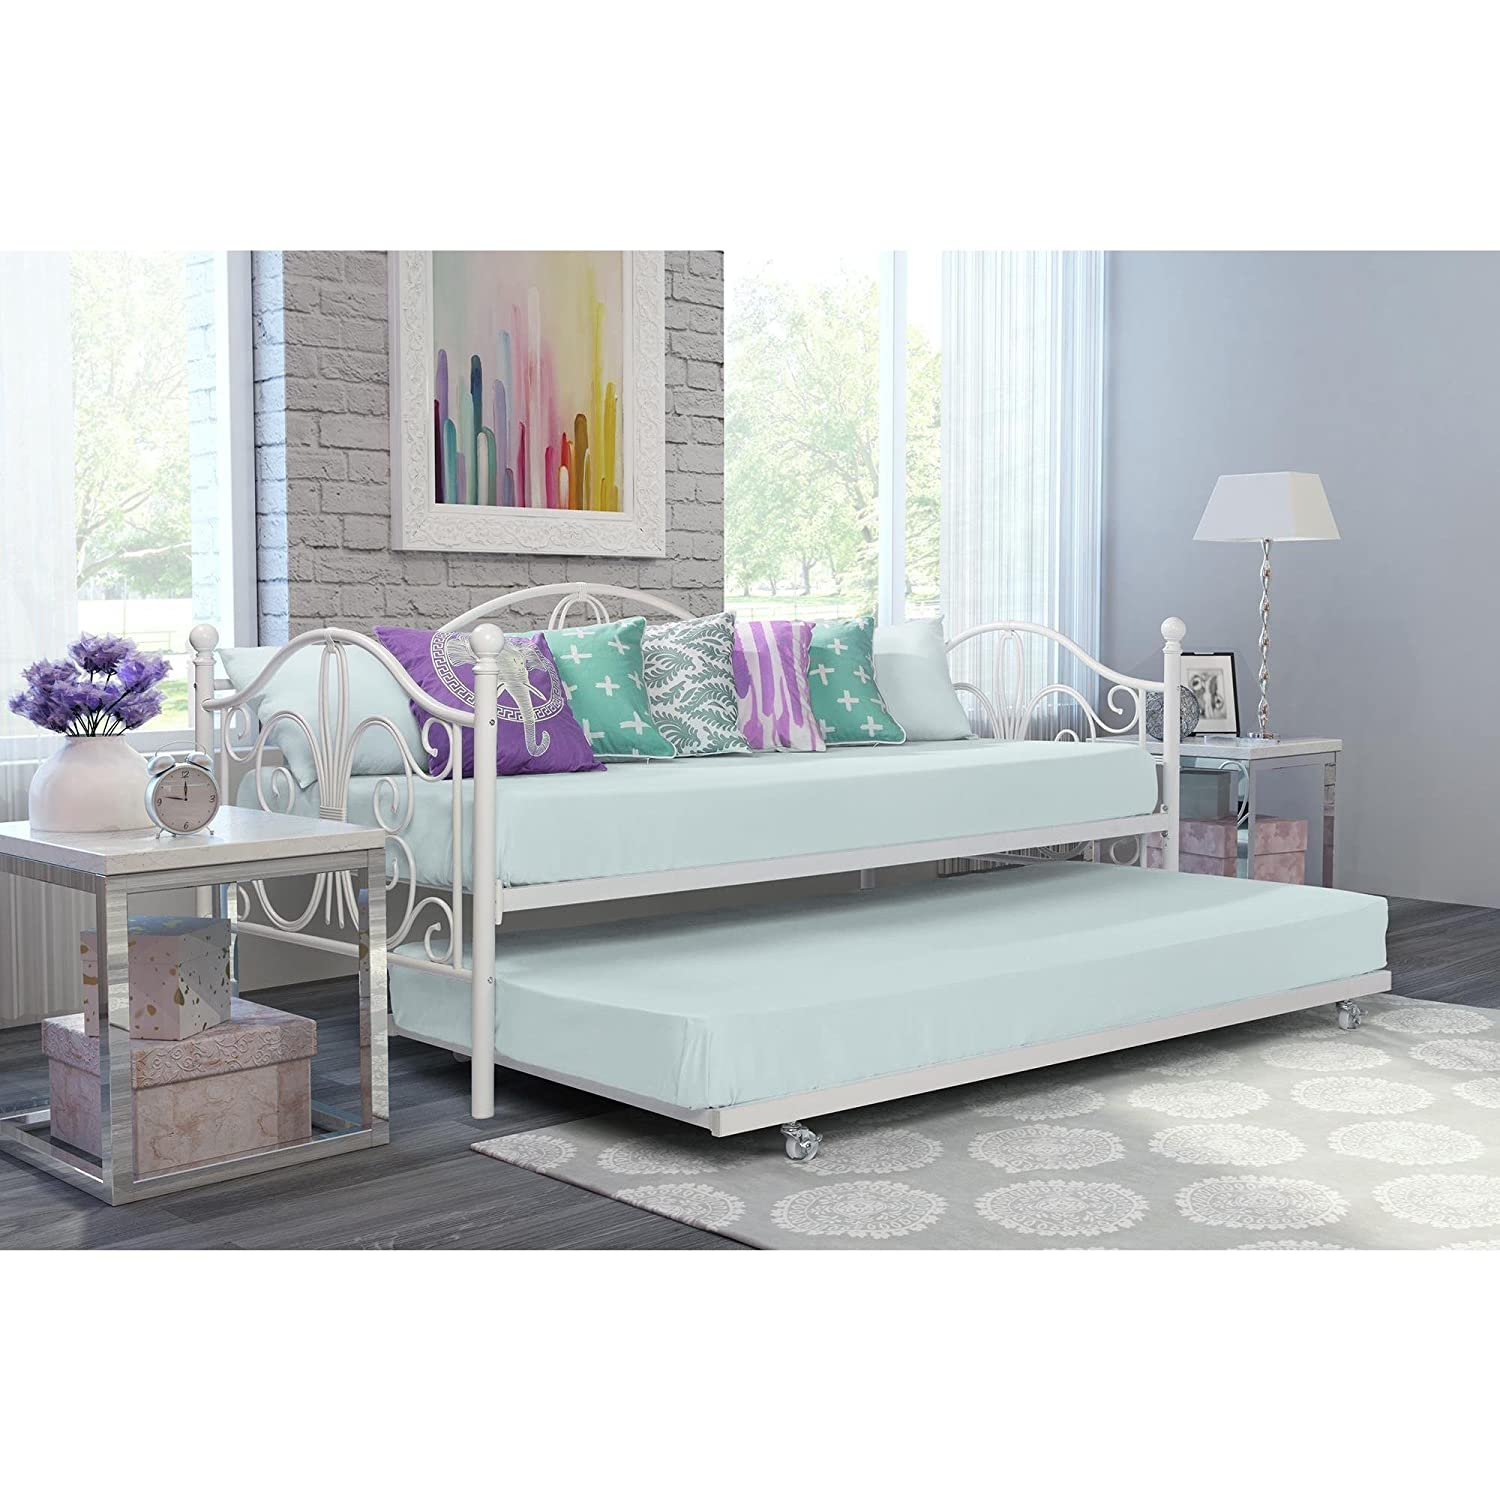 Amazon.com: Avenue Greene Bombay Metal Twin Daybed and Trundle - White:  Kitchen & Dining - Amazon.com: Avenue Greene Bombay Metal Twin Daybed And Trundle